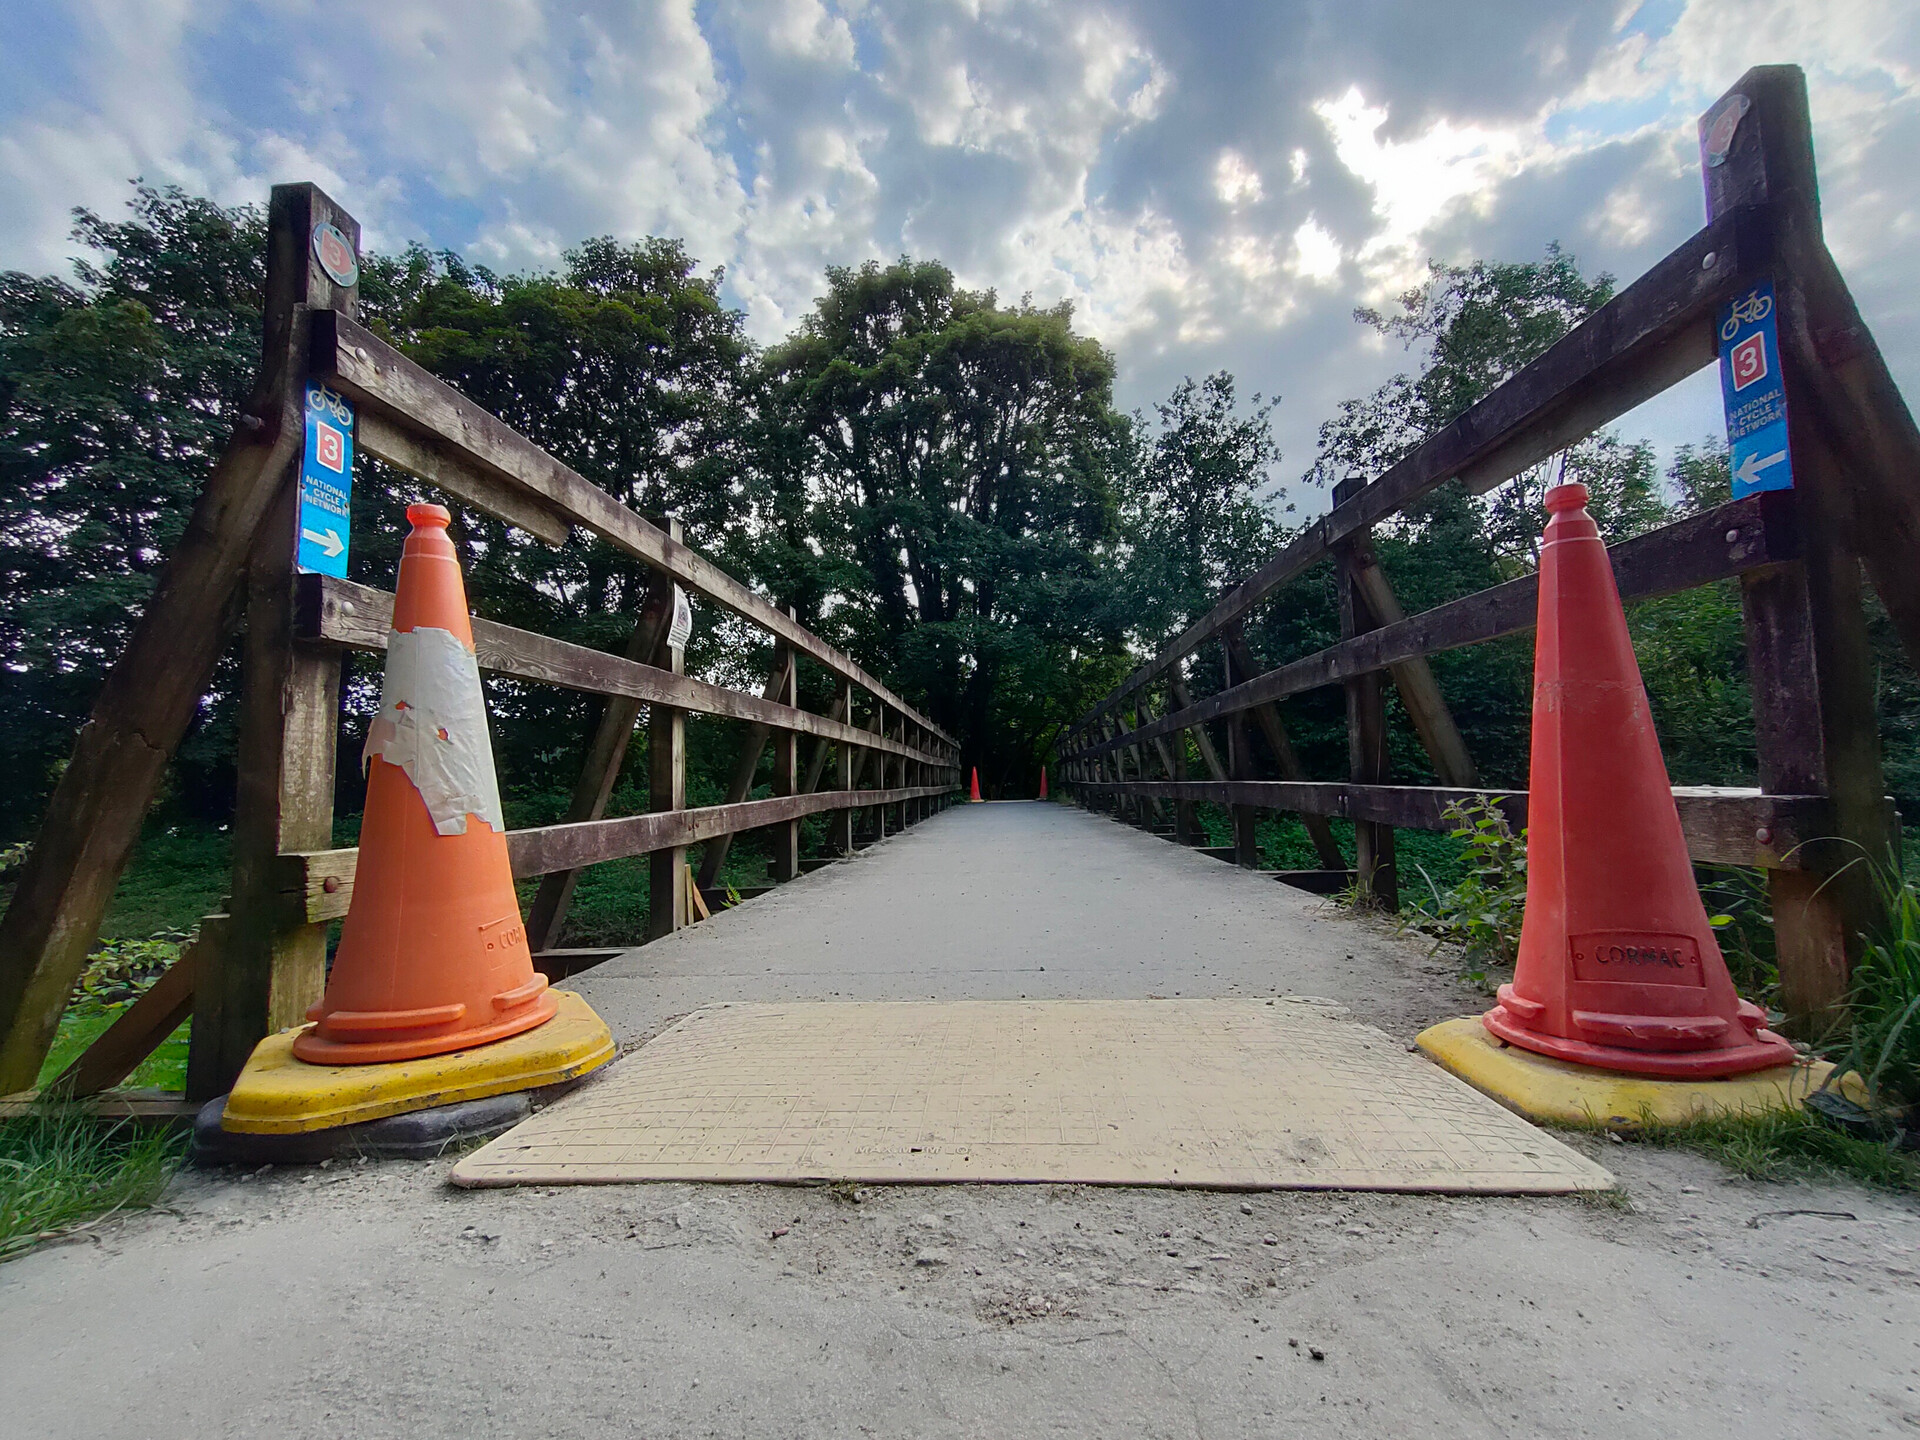 Realme 5 Pro HDR wide angle color cones on bridge